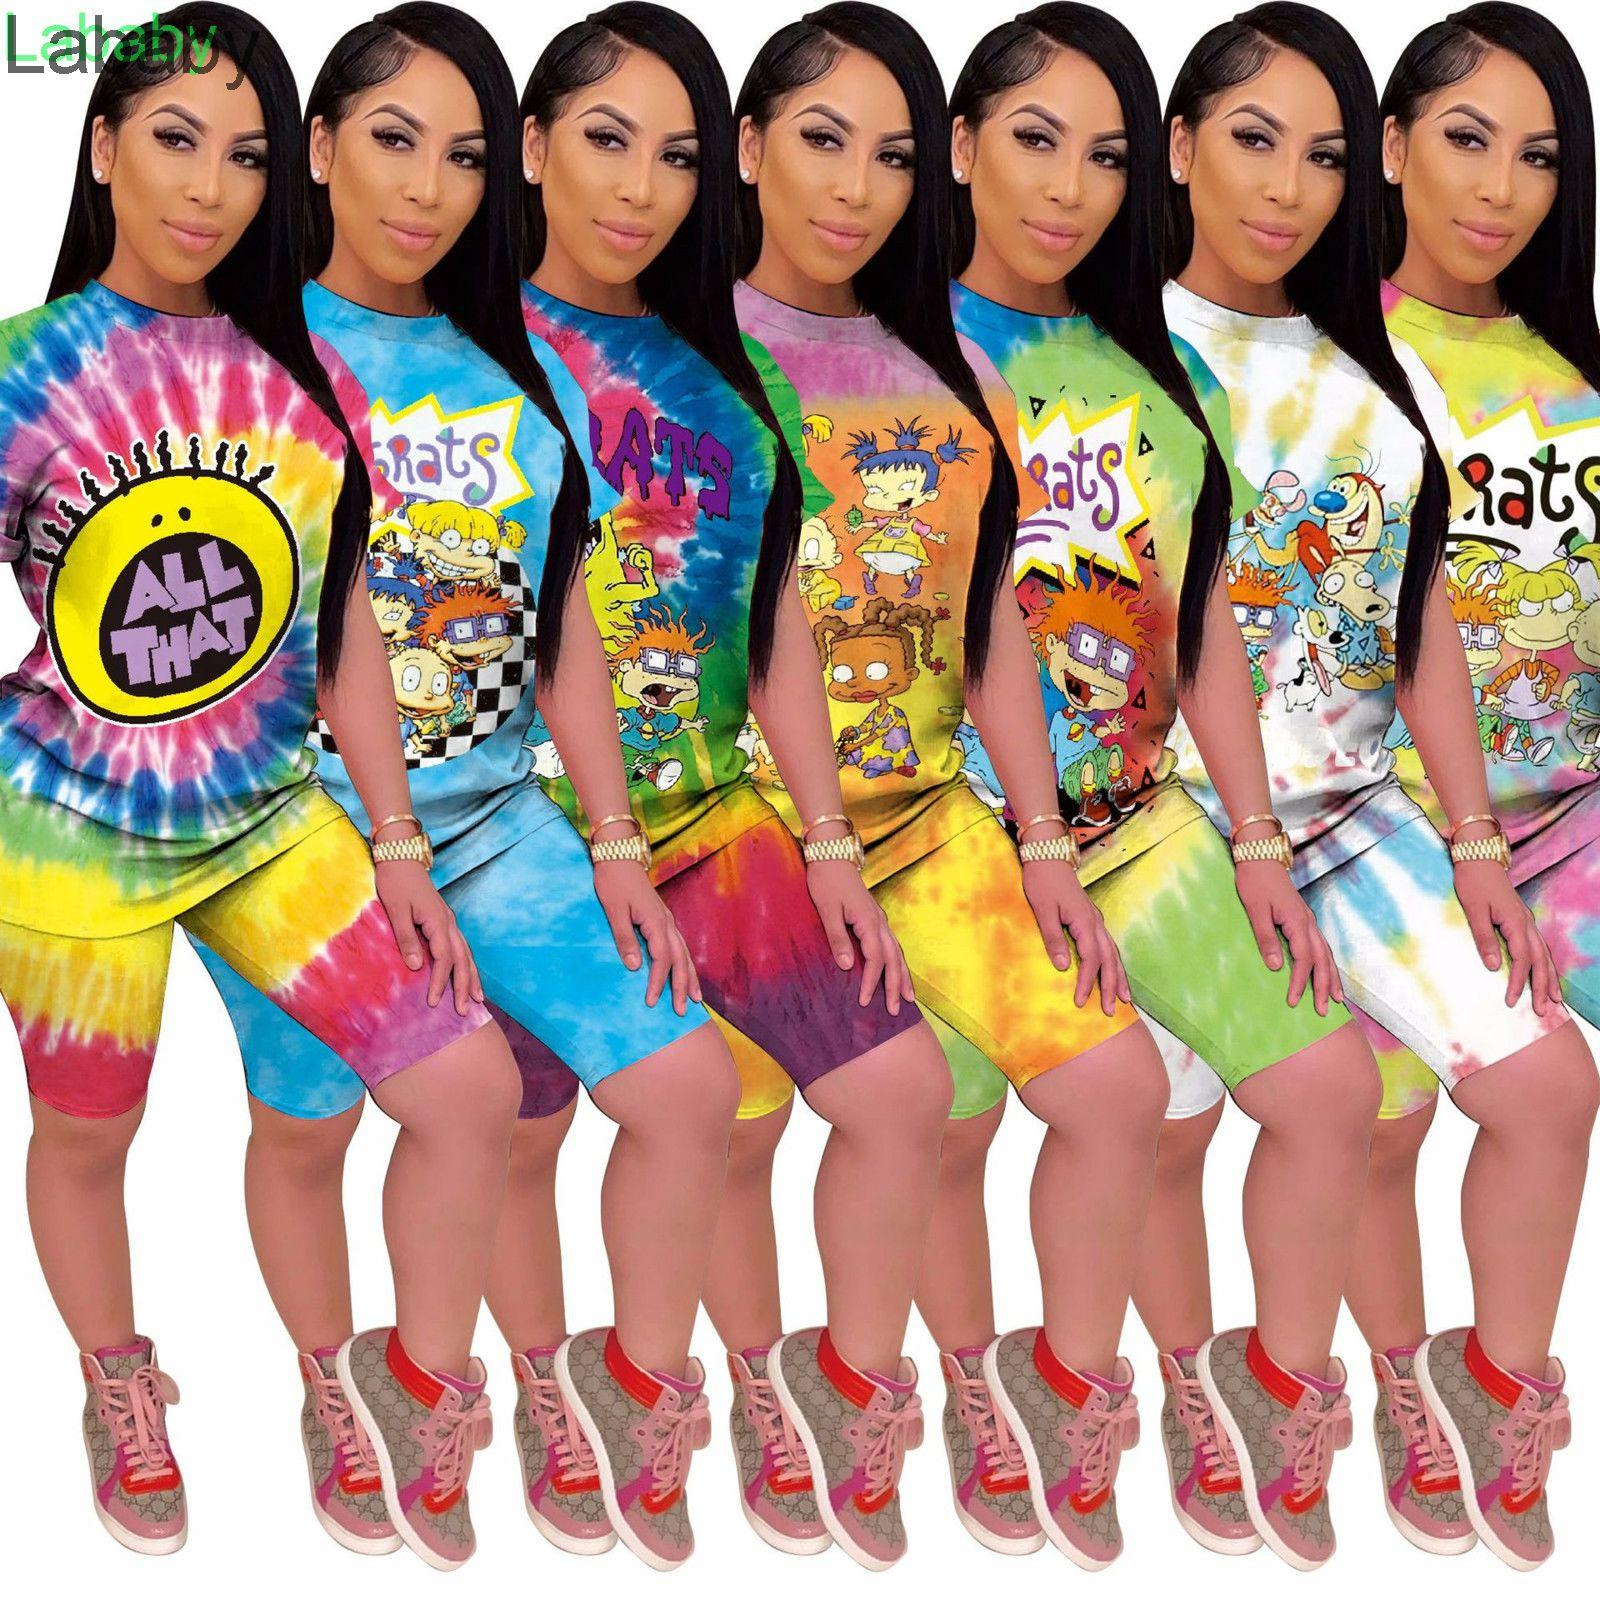 Women Tracksuits Designer 2021 New Classic Cartoon Home Printing Tie Dye Two Piece Set Ladies Fashion Outfits